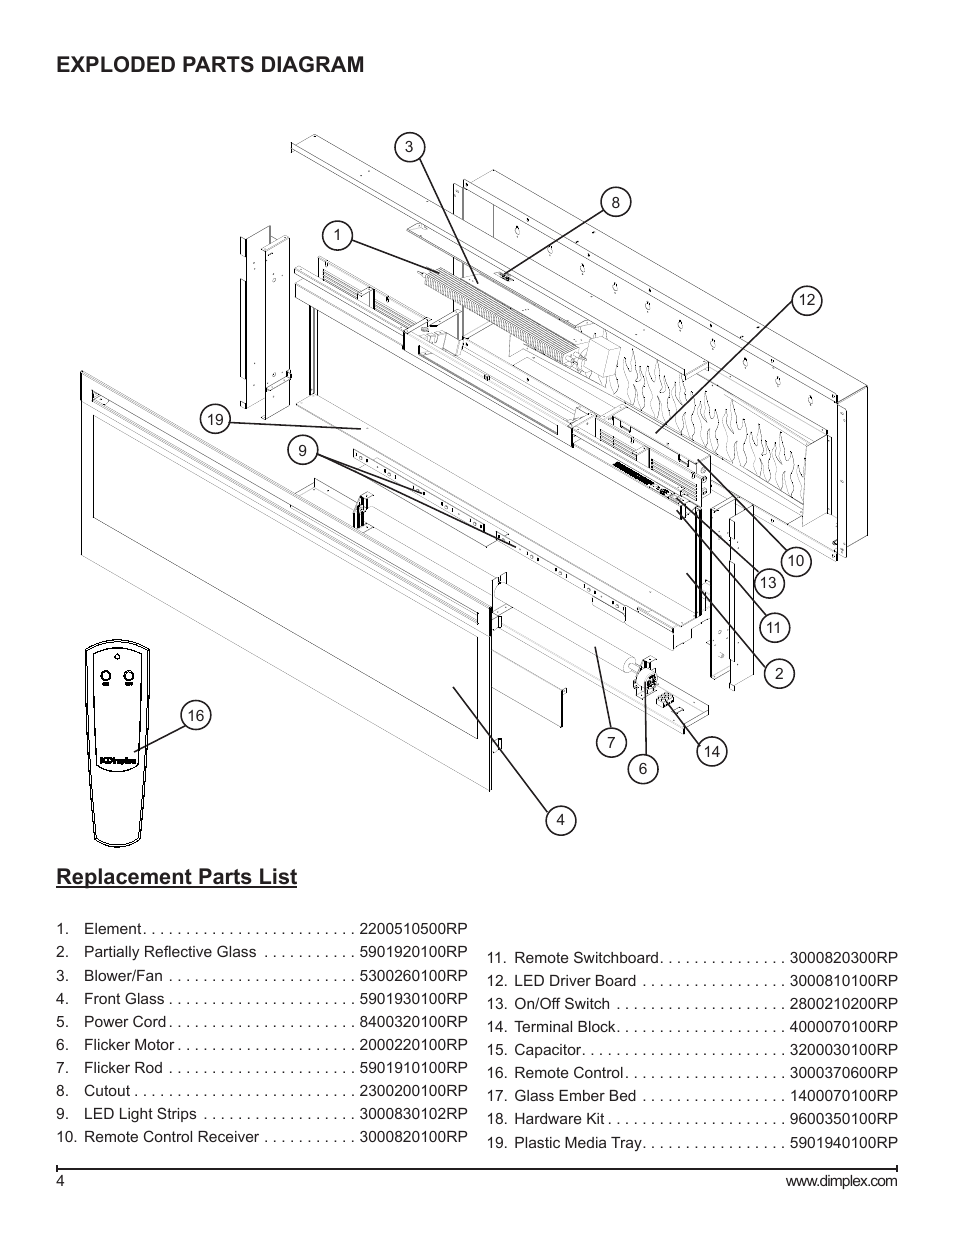 exploded parts diagram  exploded parts diagram replacement